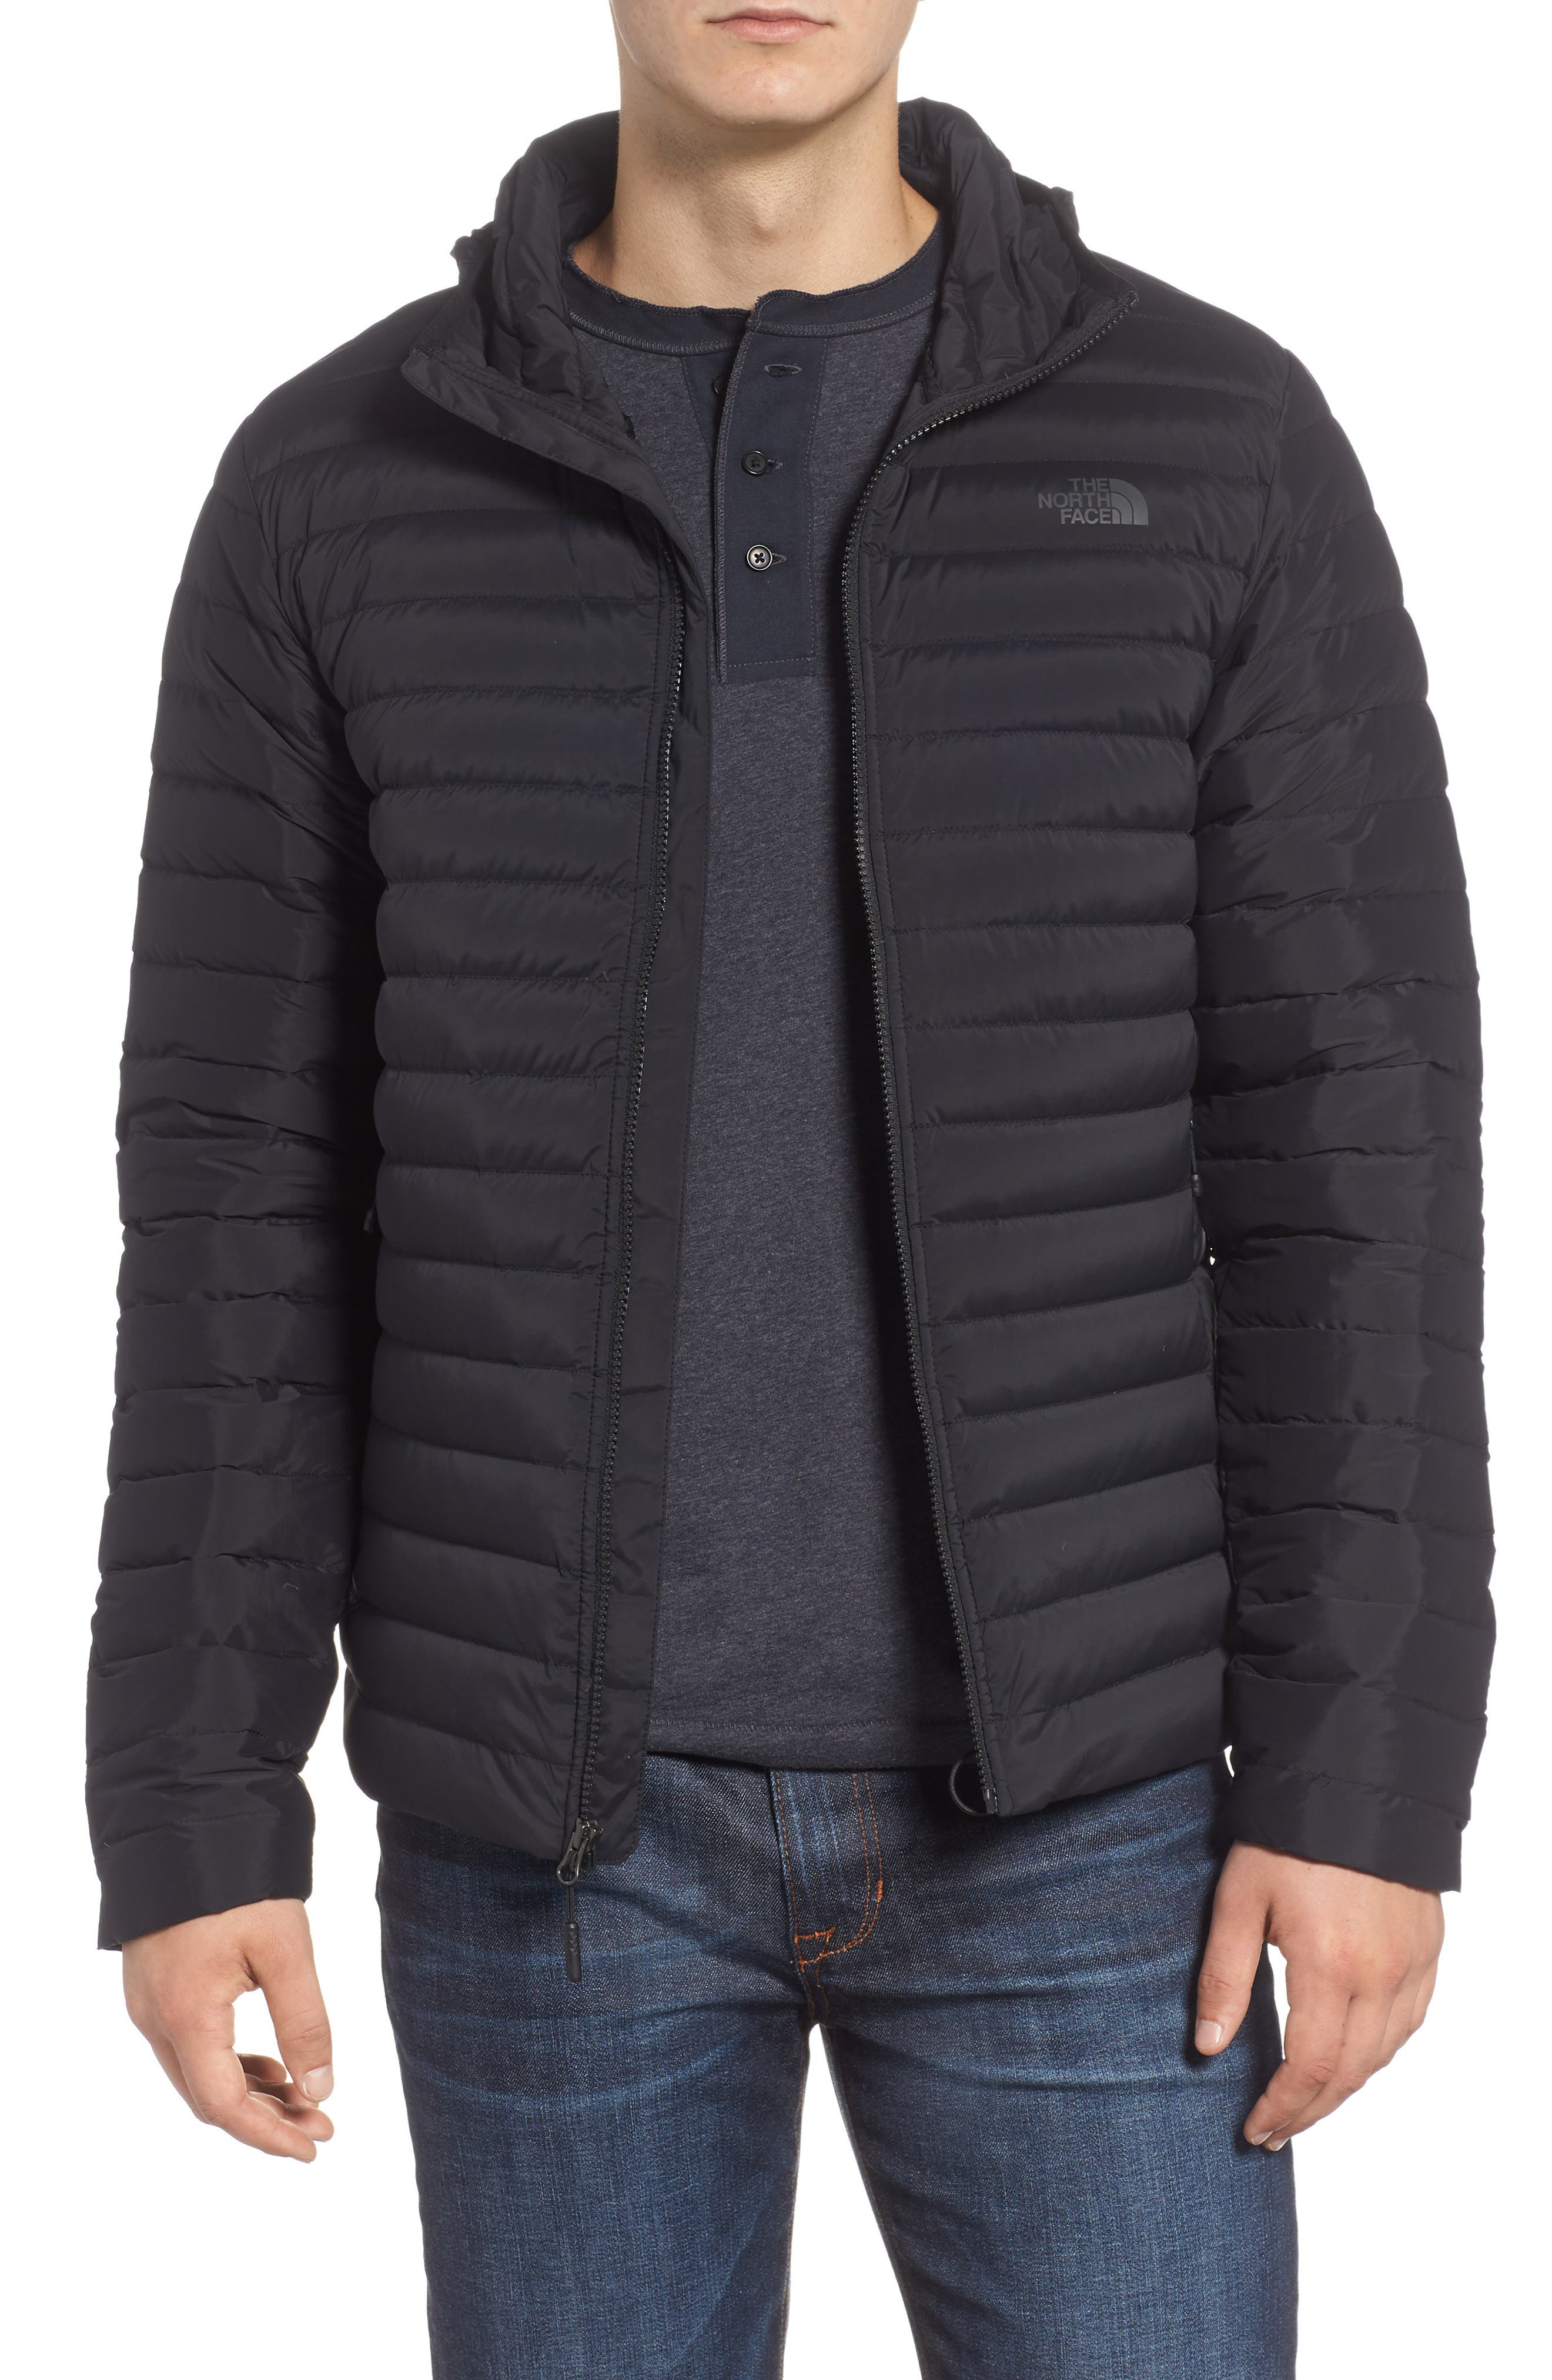 THE NORTH FACE Packable Stretch Down Hooded Jacket, Main, color, 001